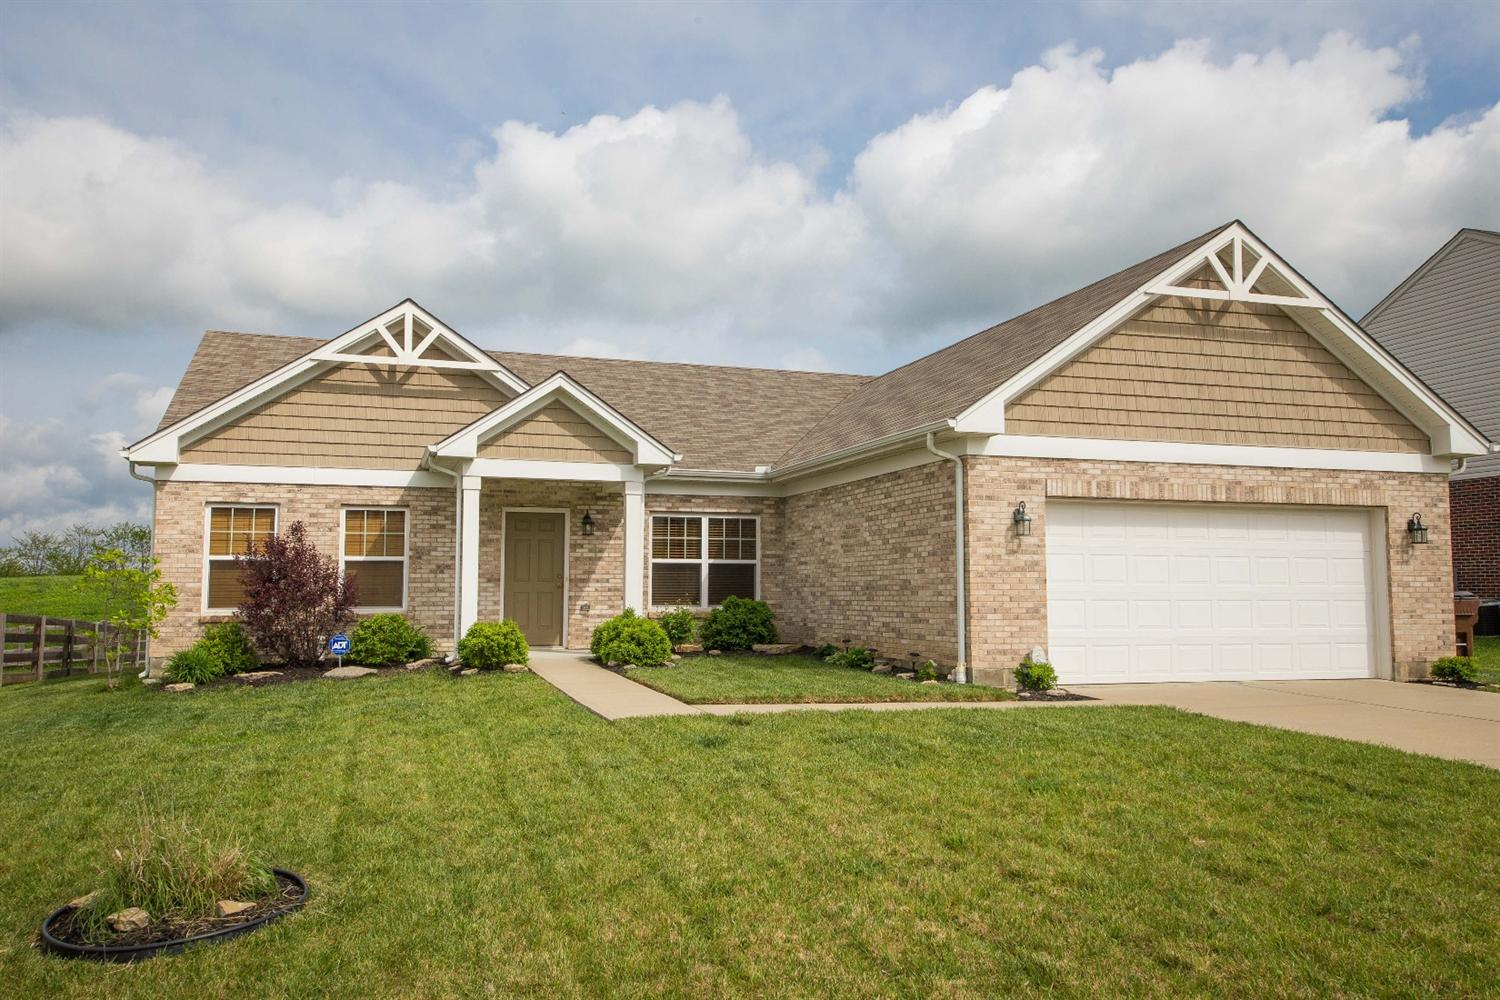 Photo 1 for 6355 Alexandra Ct Independence, KY 41051